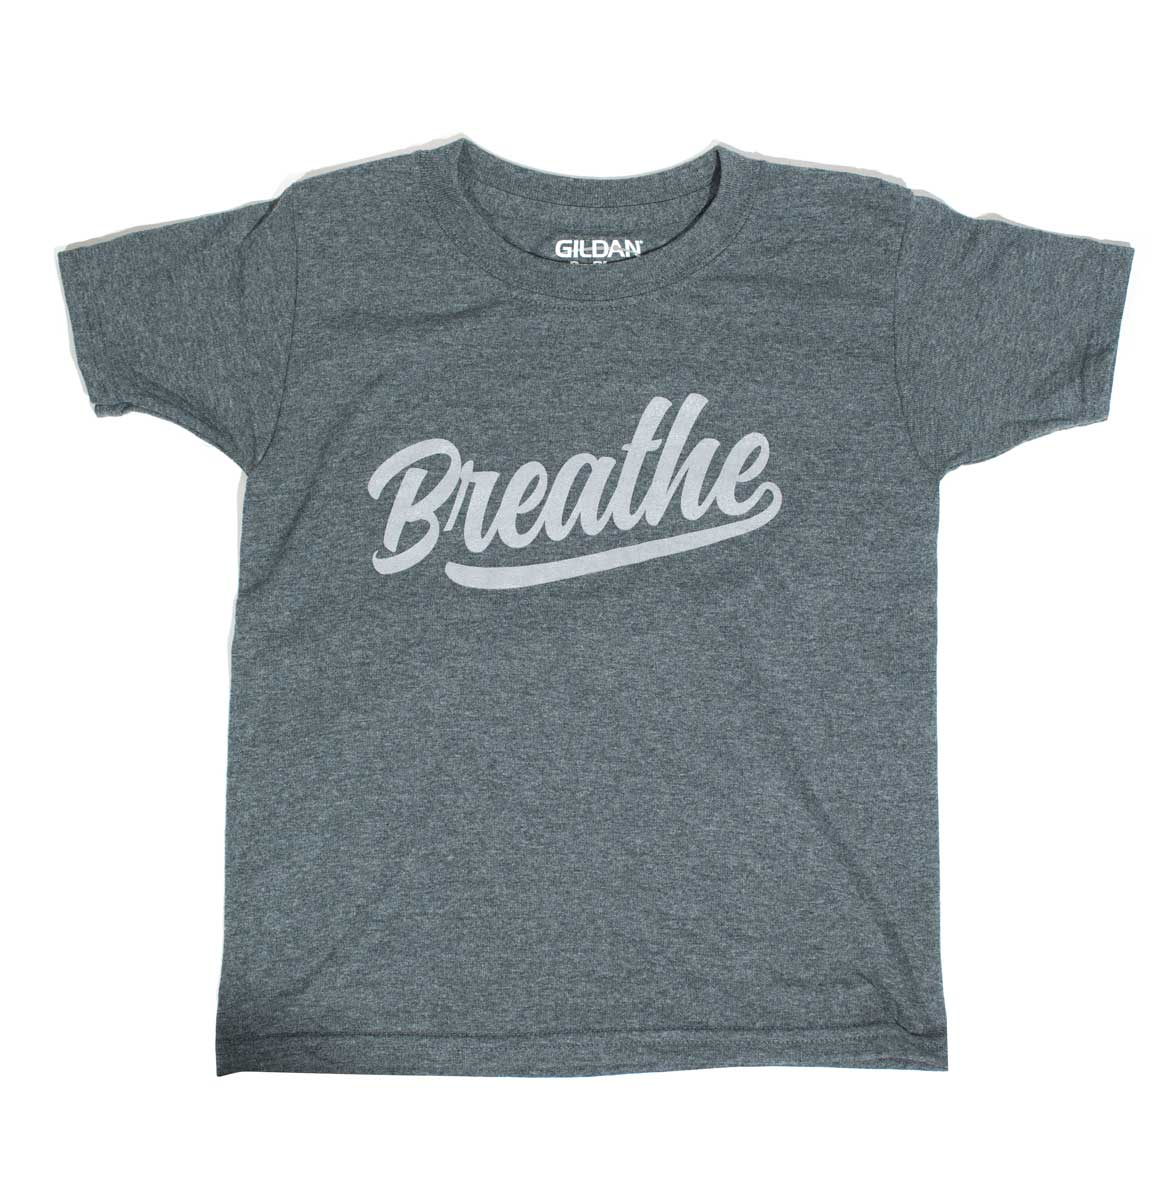 Breathe youth steel city clothing company for Custom t shirt printing pittsburgh